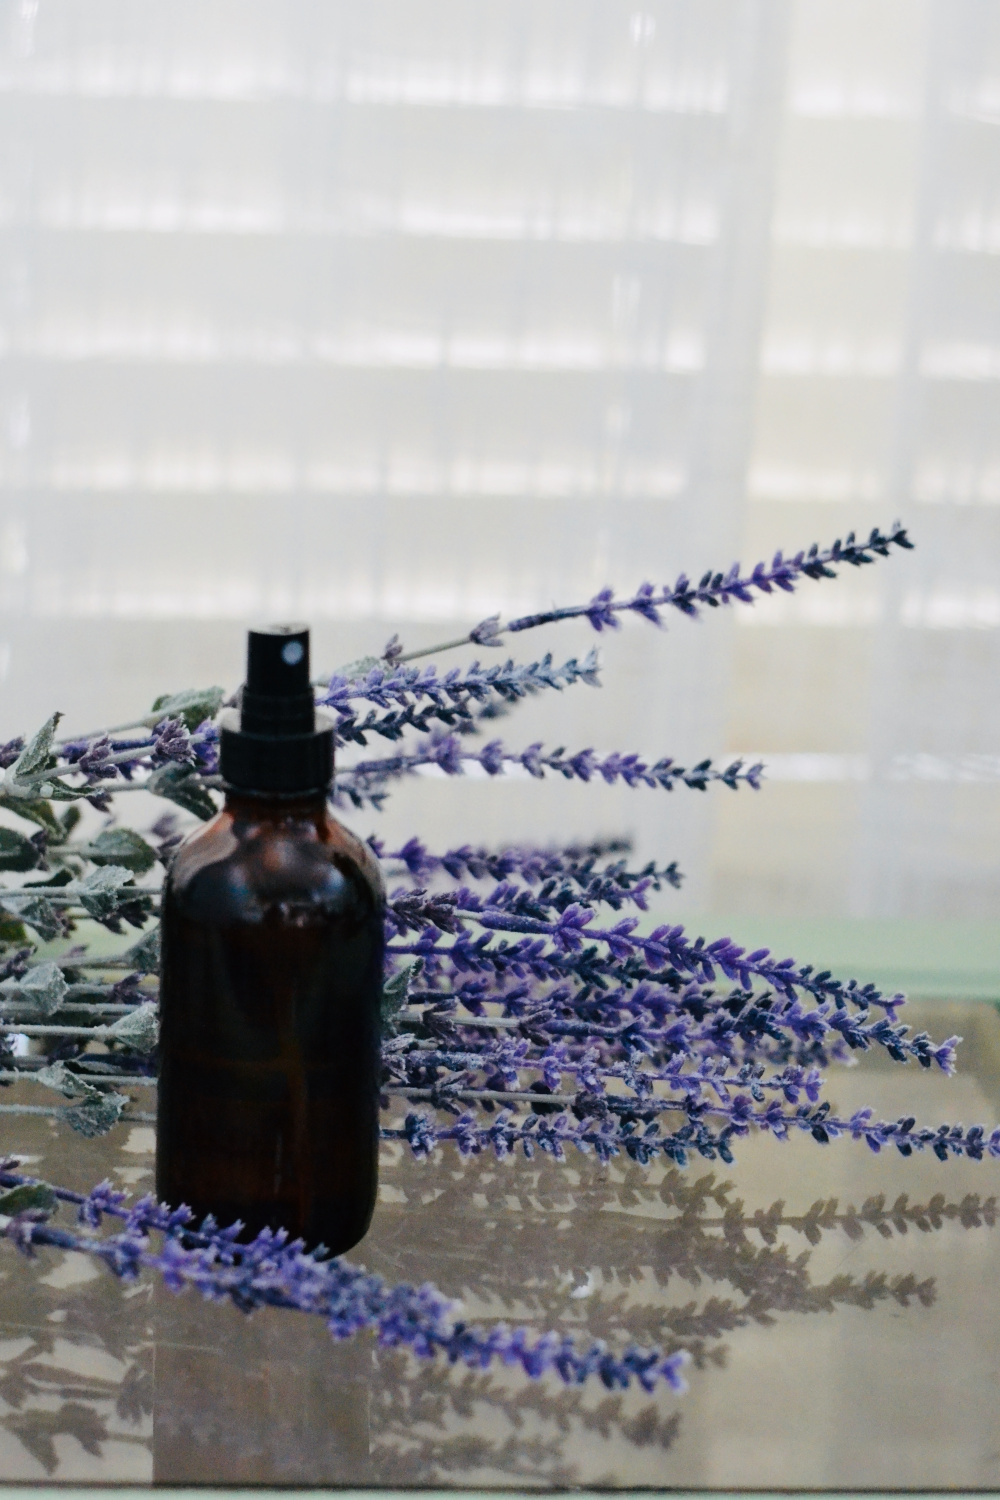 Lavender linen spray with lavender bunches on a table